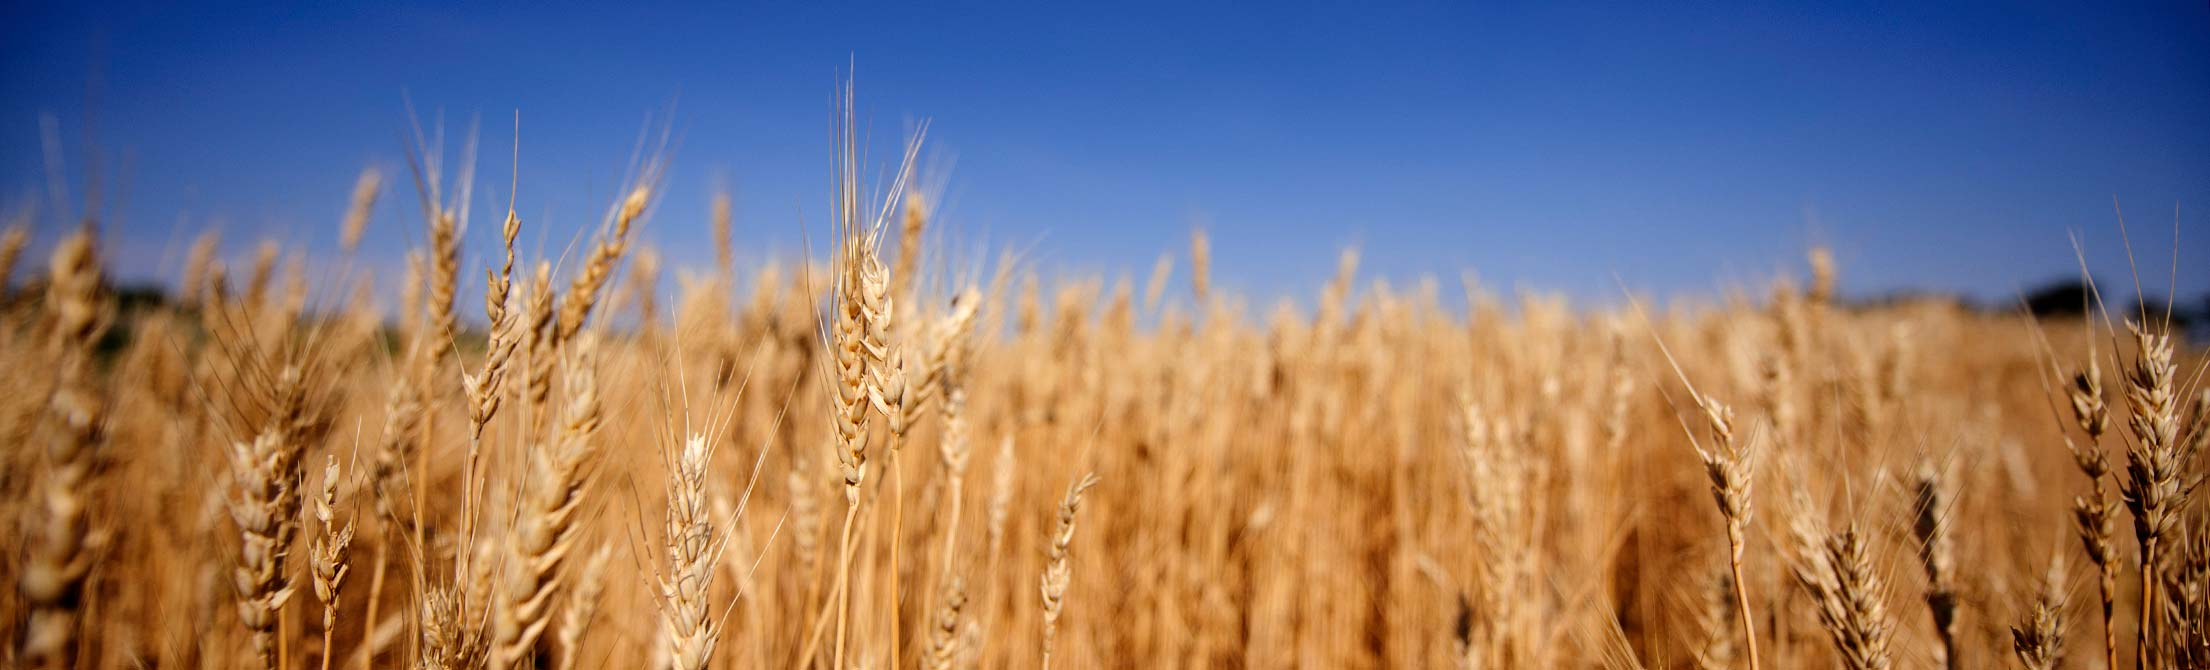 image of golden wheatfield